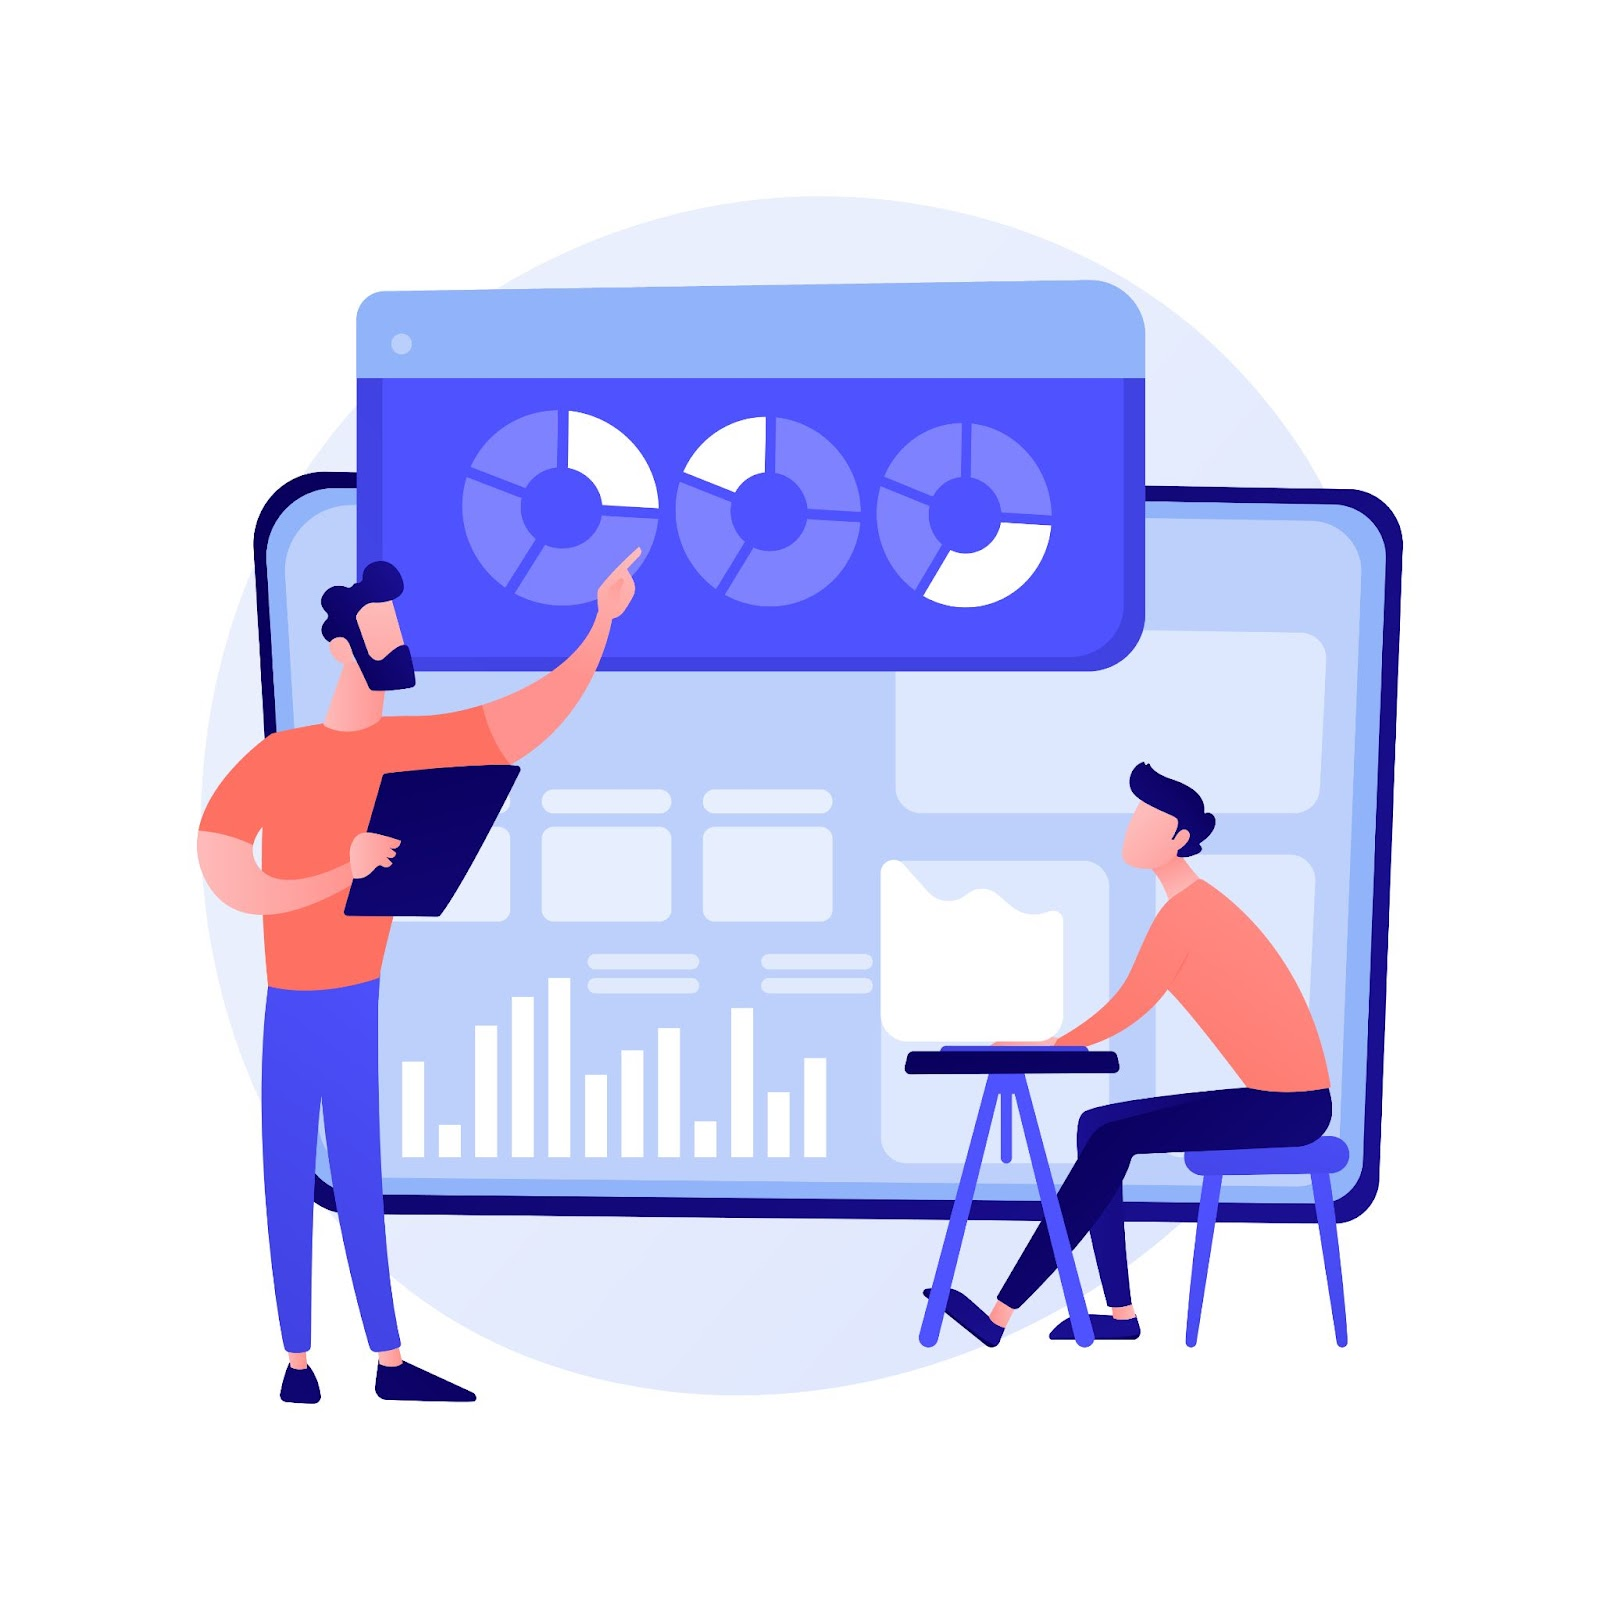 Practical knowledge of Data Science